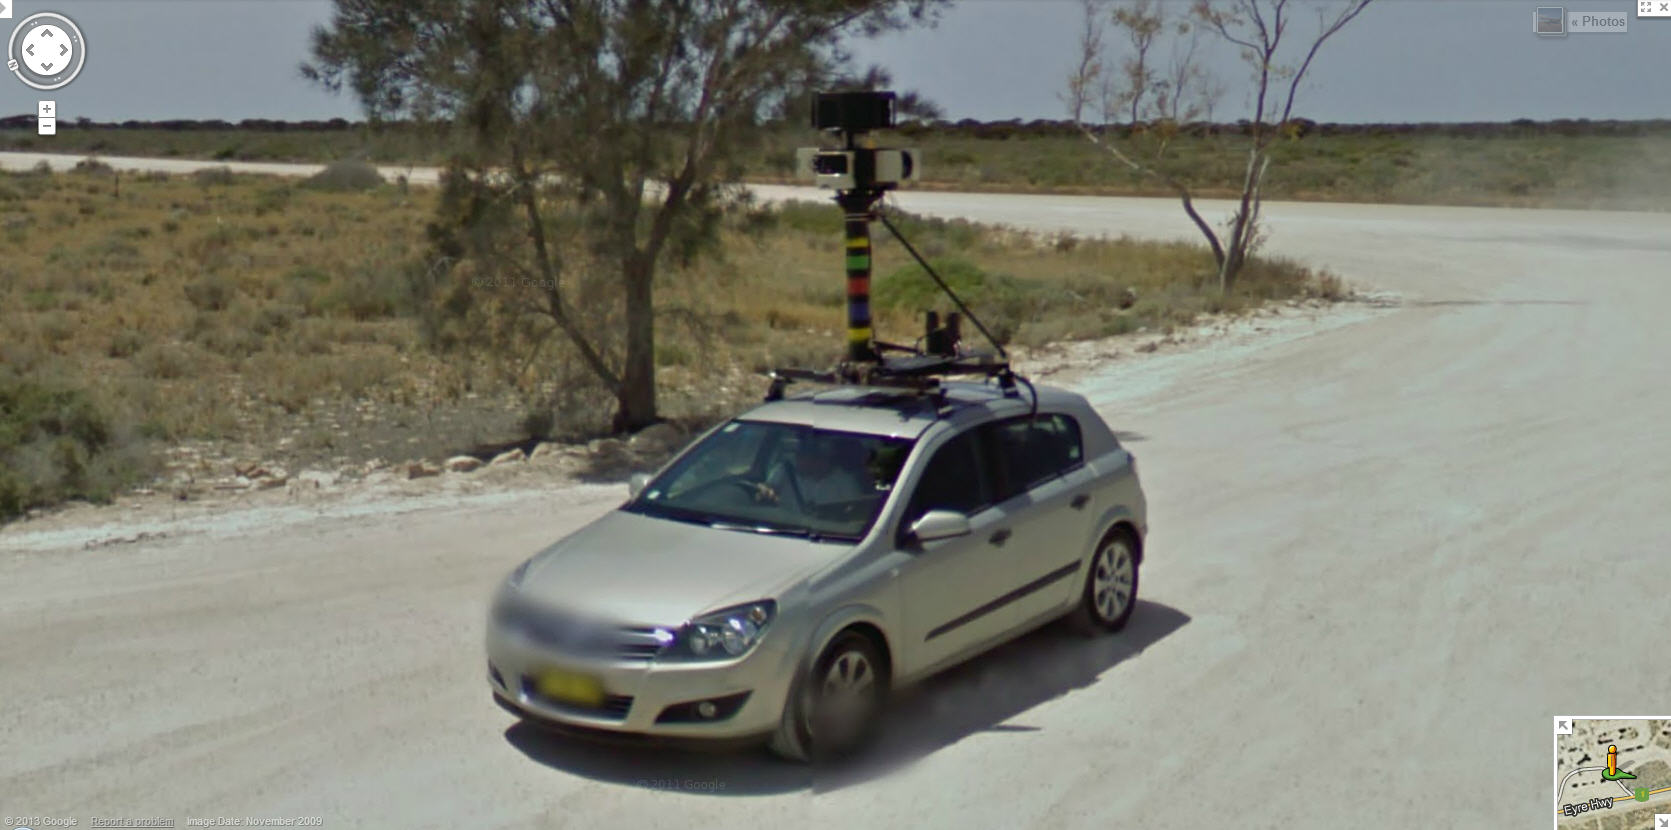 Unmarked Google Street View Cars Used in Australia. | Google ... on google maps street view software, google maps street view address, google maps street view mobile, google maps street view home, google maps street view online,